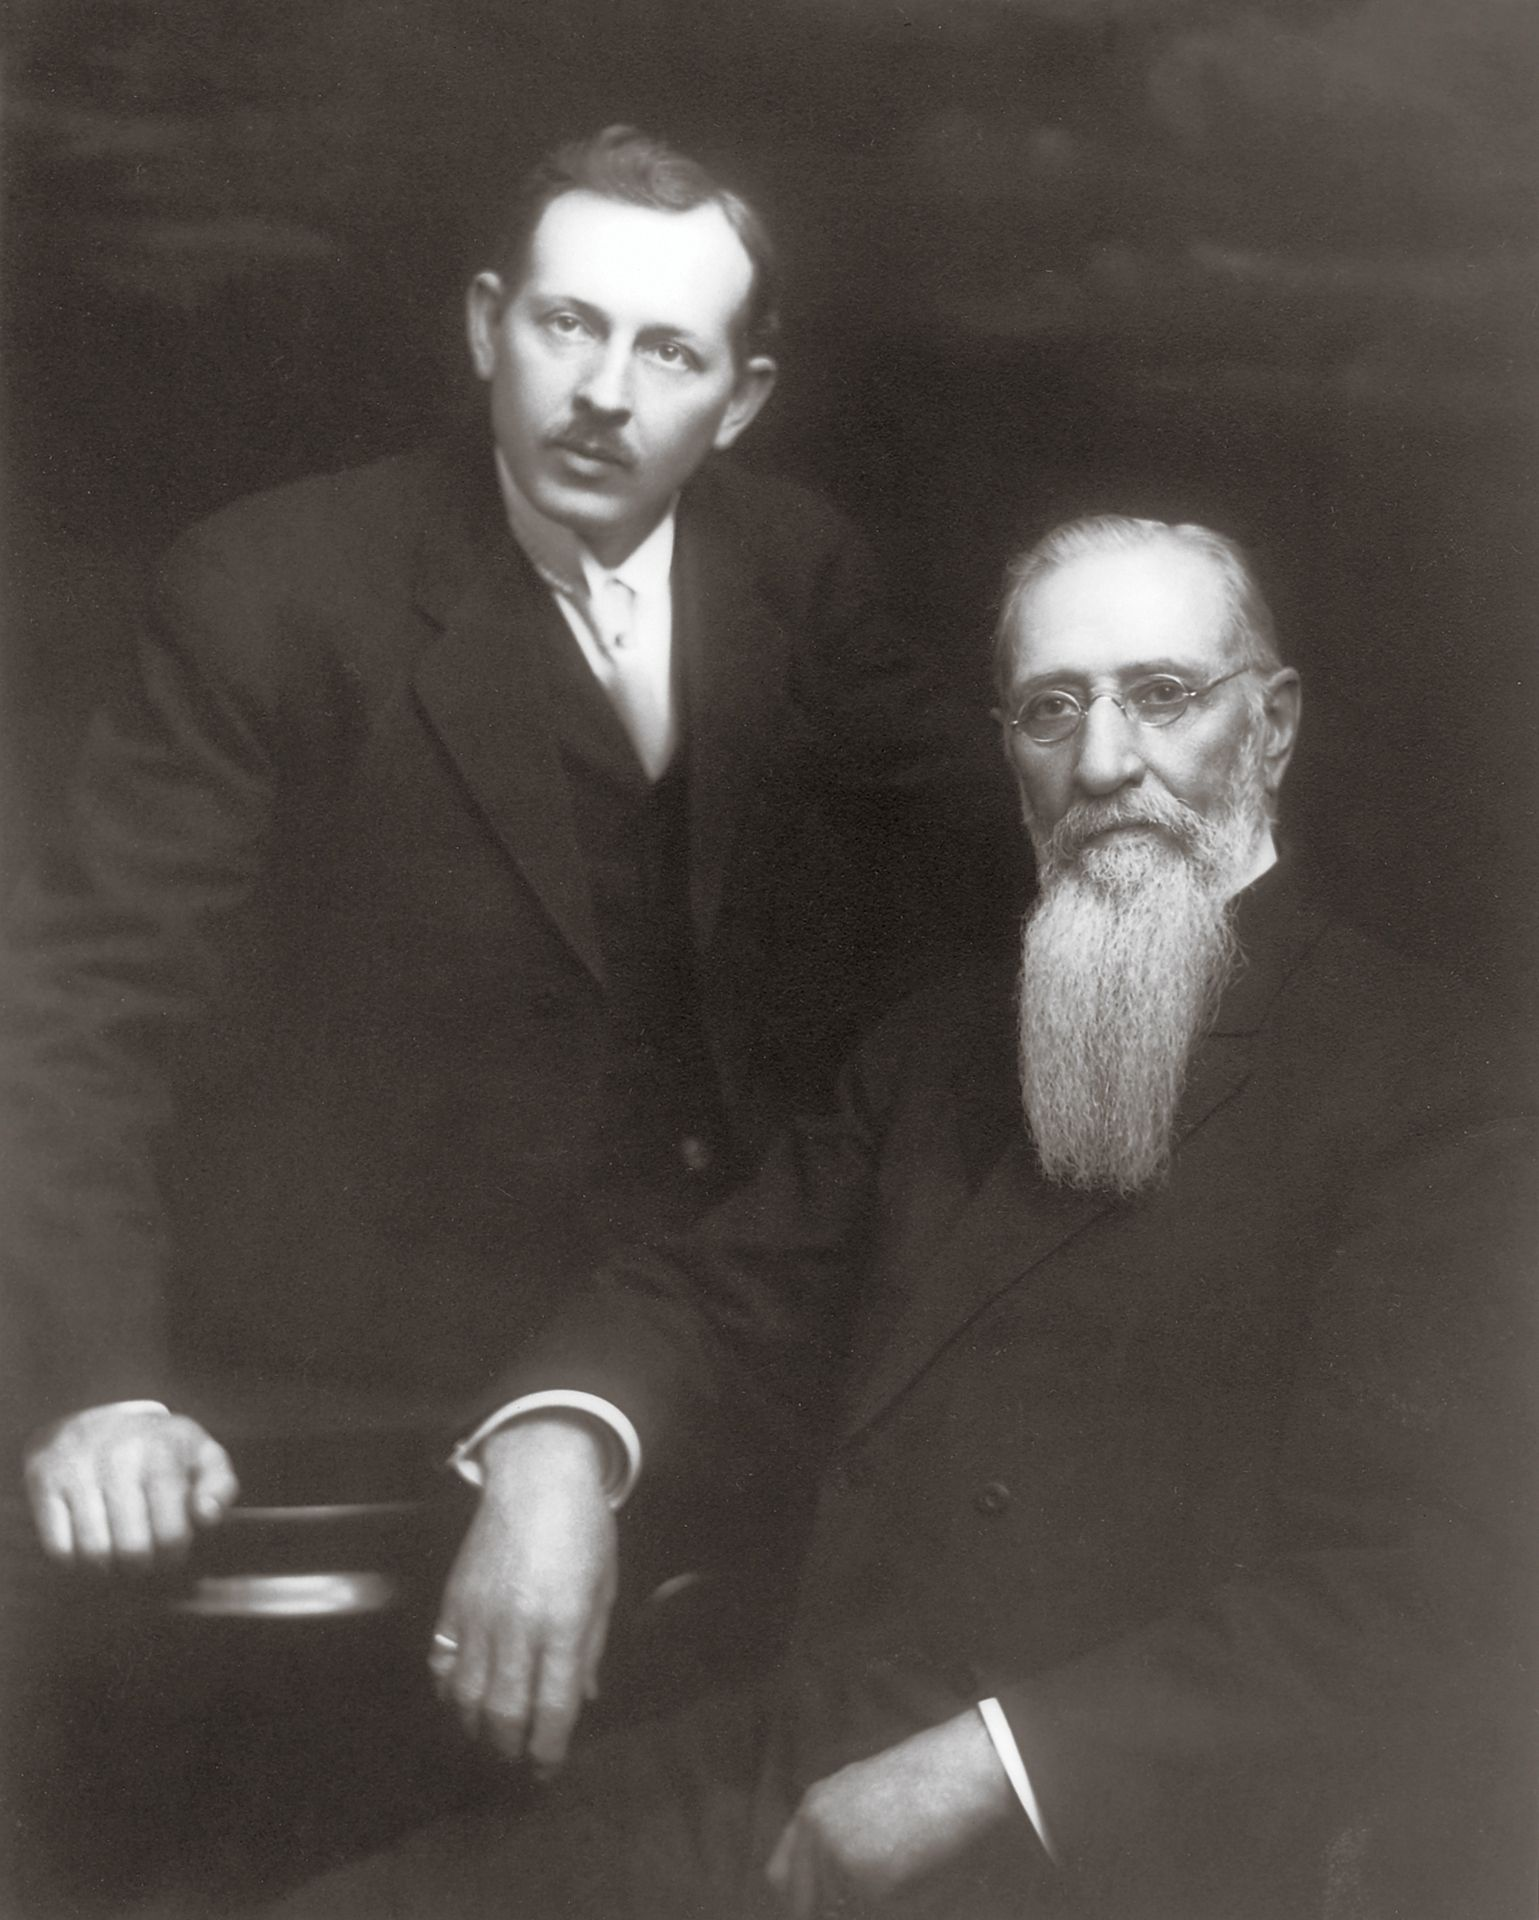 Joseph Fielding Smith standing beside his father, Joseph F. Smith, in May 1914. Teachings of Presidents of the Church: Joseph Fielding Smith (2013), 140